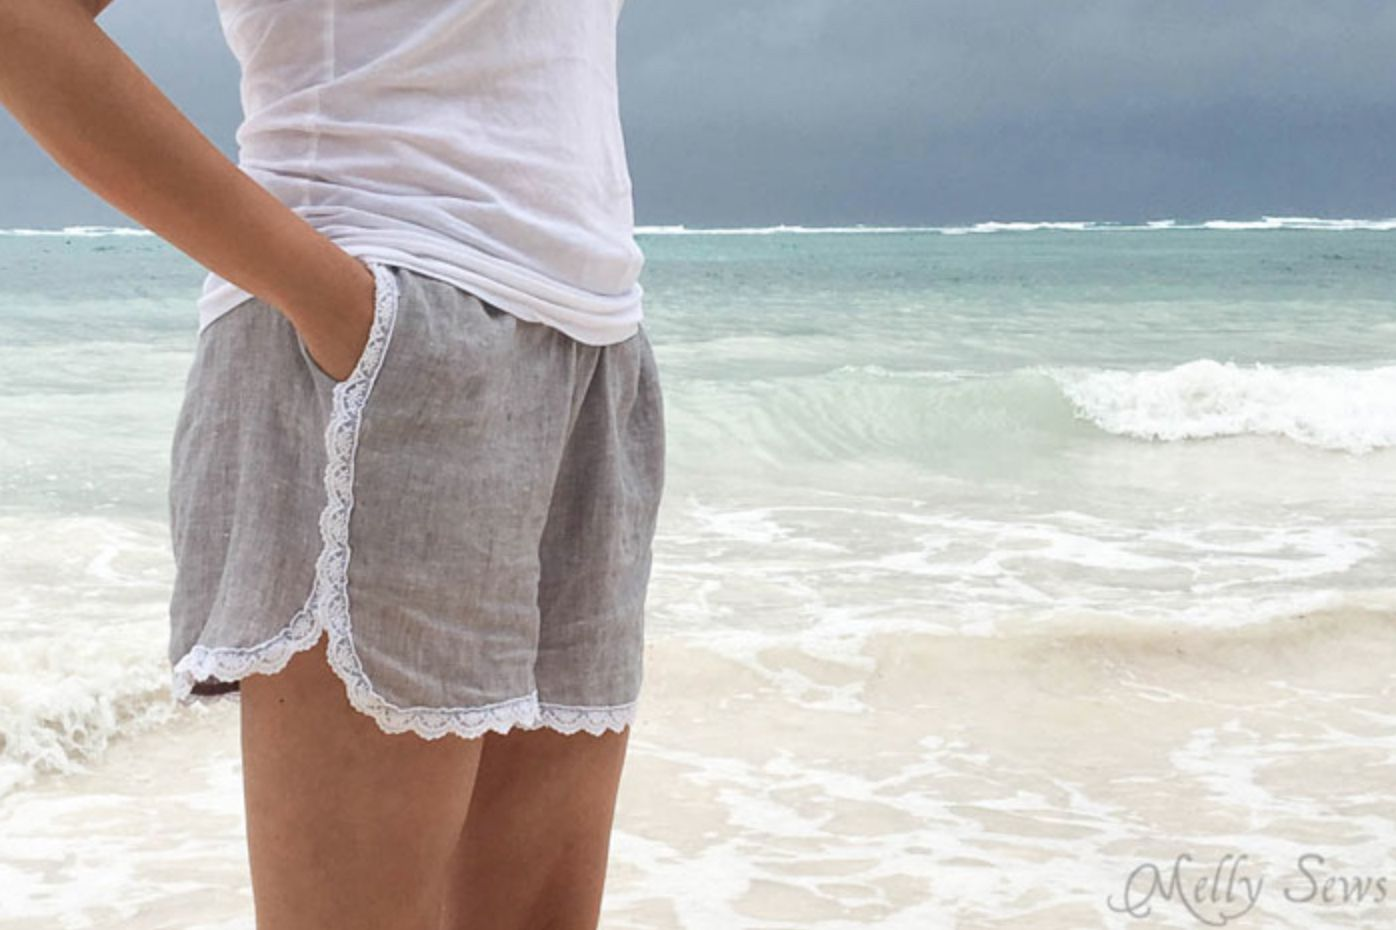 Lace-Trimmed Shorts Pattern